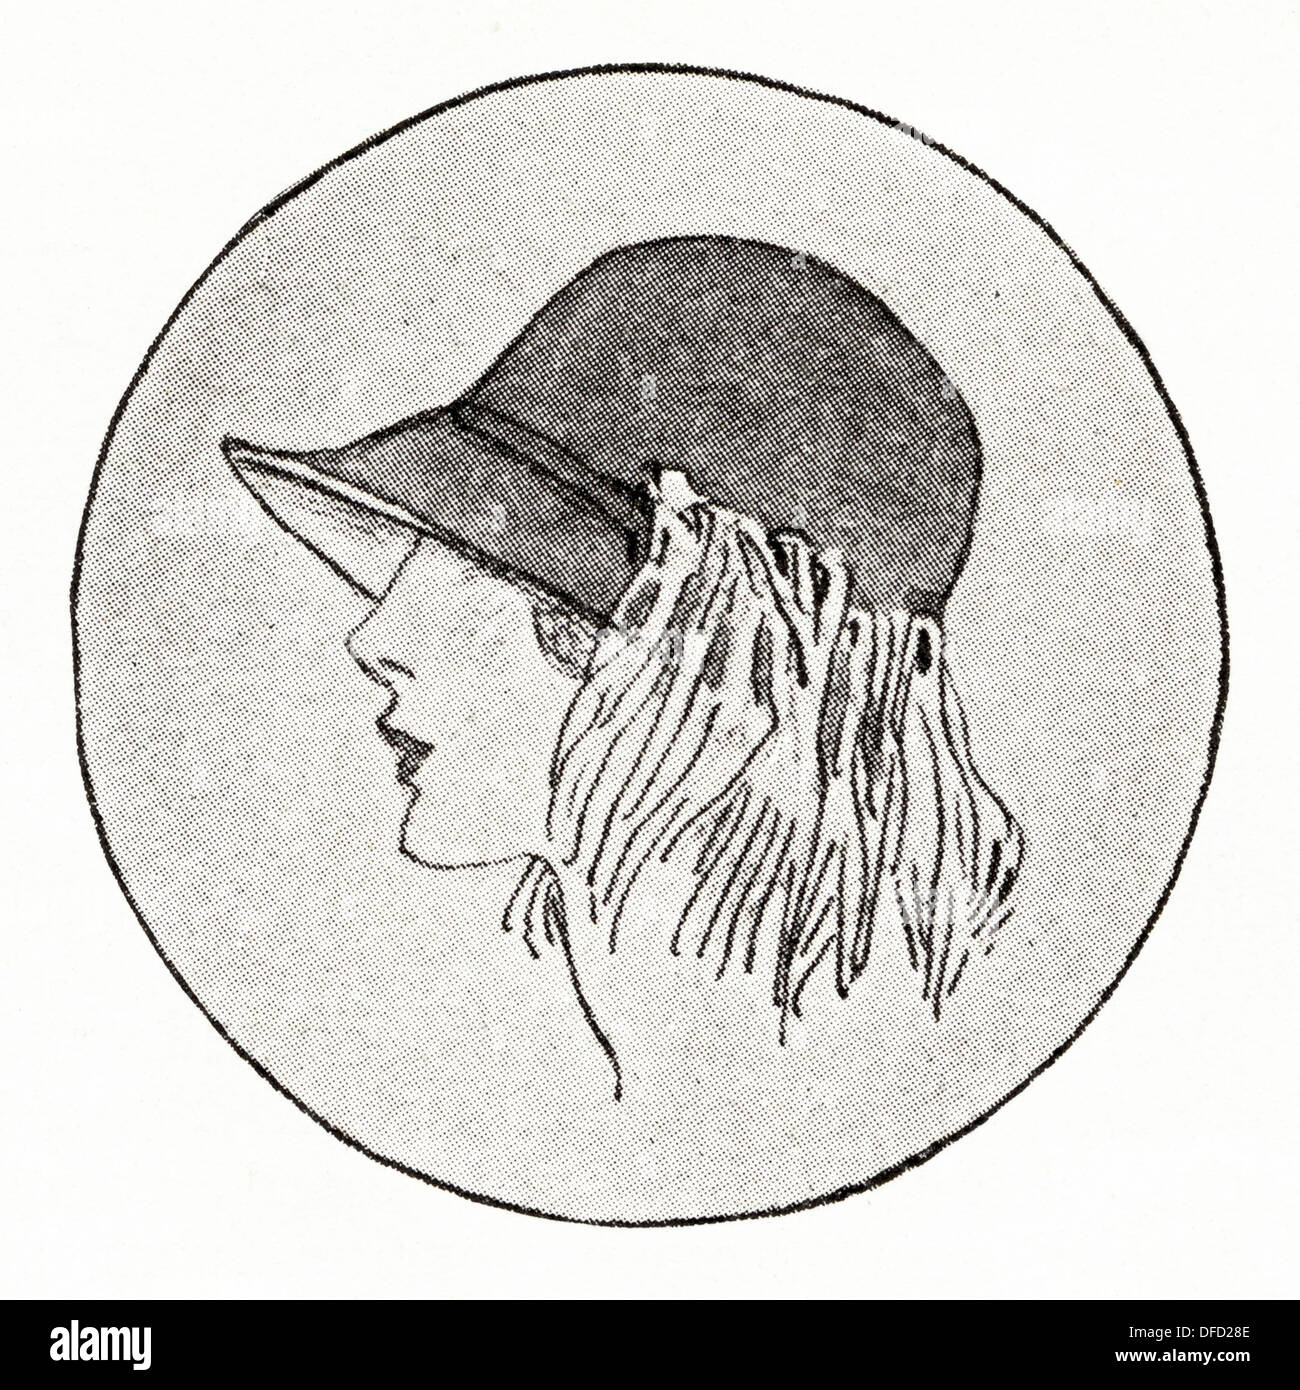 Flapper fashion of the 1920s. Hat with down-turned brim of tete-de-negre satin trimmed with drooping ostrich feathers, designer unknown. Original vintage illustration from a women's fashion magazine circa 1924 - Stock Image